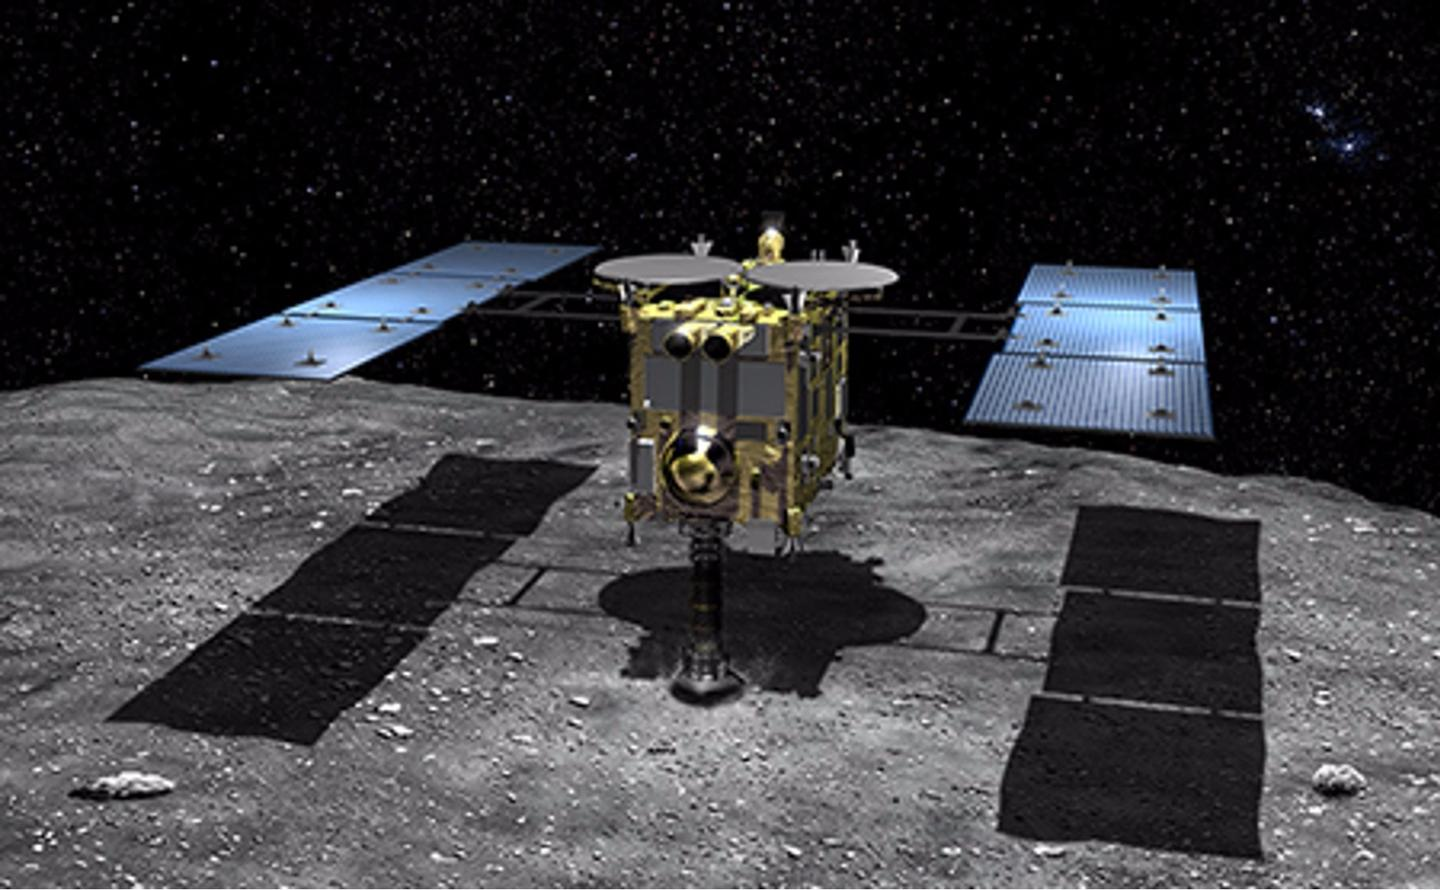 Hayabusa2 was launched on December 3, 2014 from the Tanegashima Space Center on a mission to not only land on an asteroid, but to bomb it